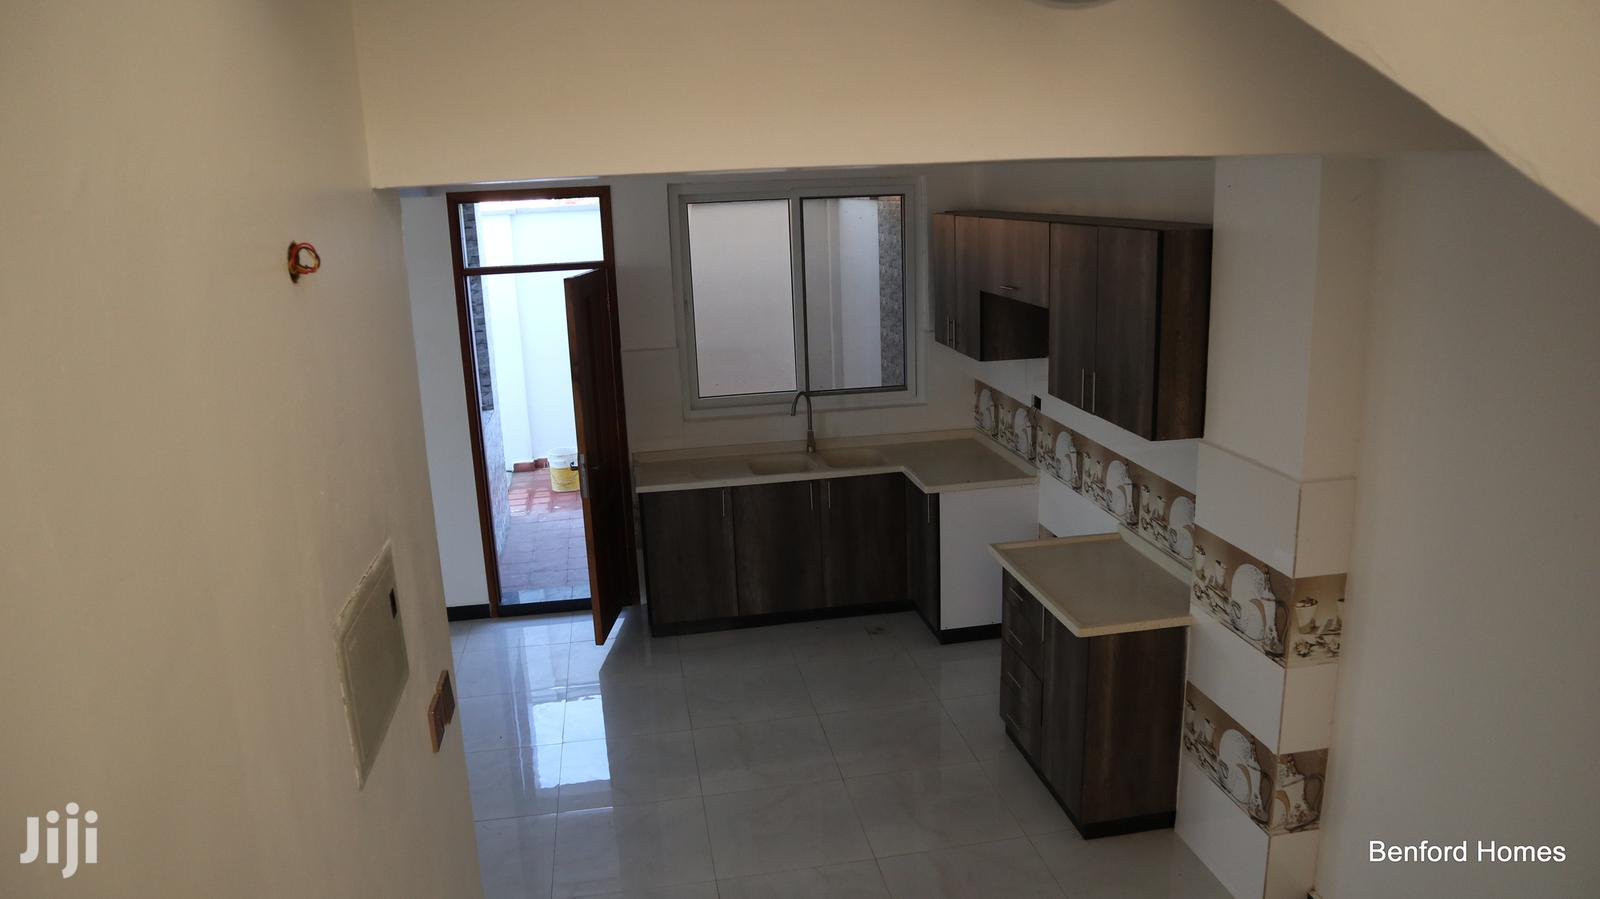 4br Townhouse On Sale Bamburi/ Benford Homes   Houses & Apartments For Sale for sale in Kisauni, Mombasa, Kenya